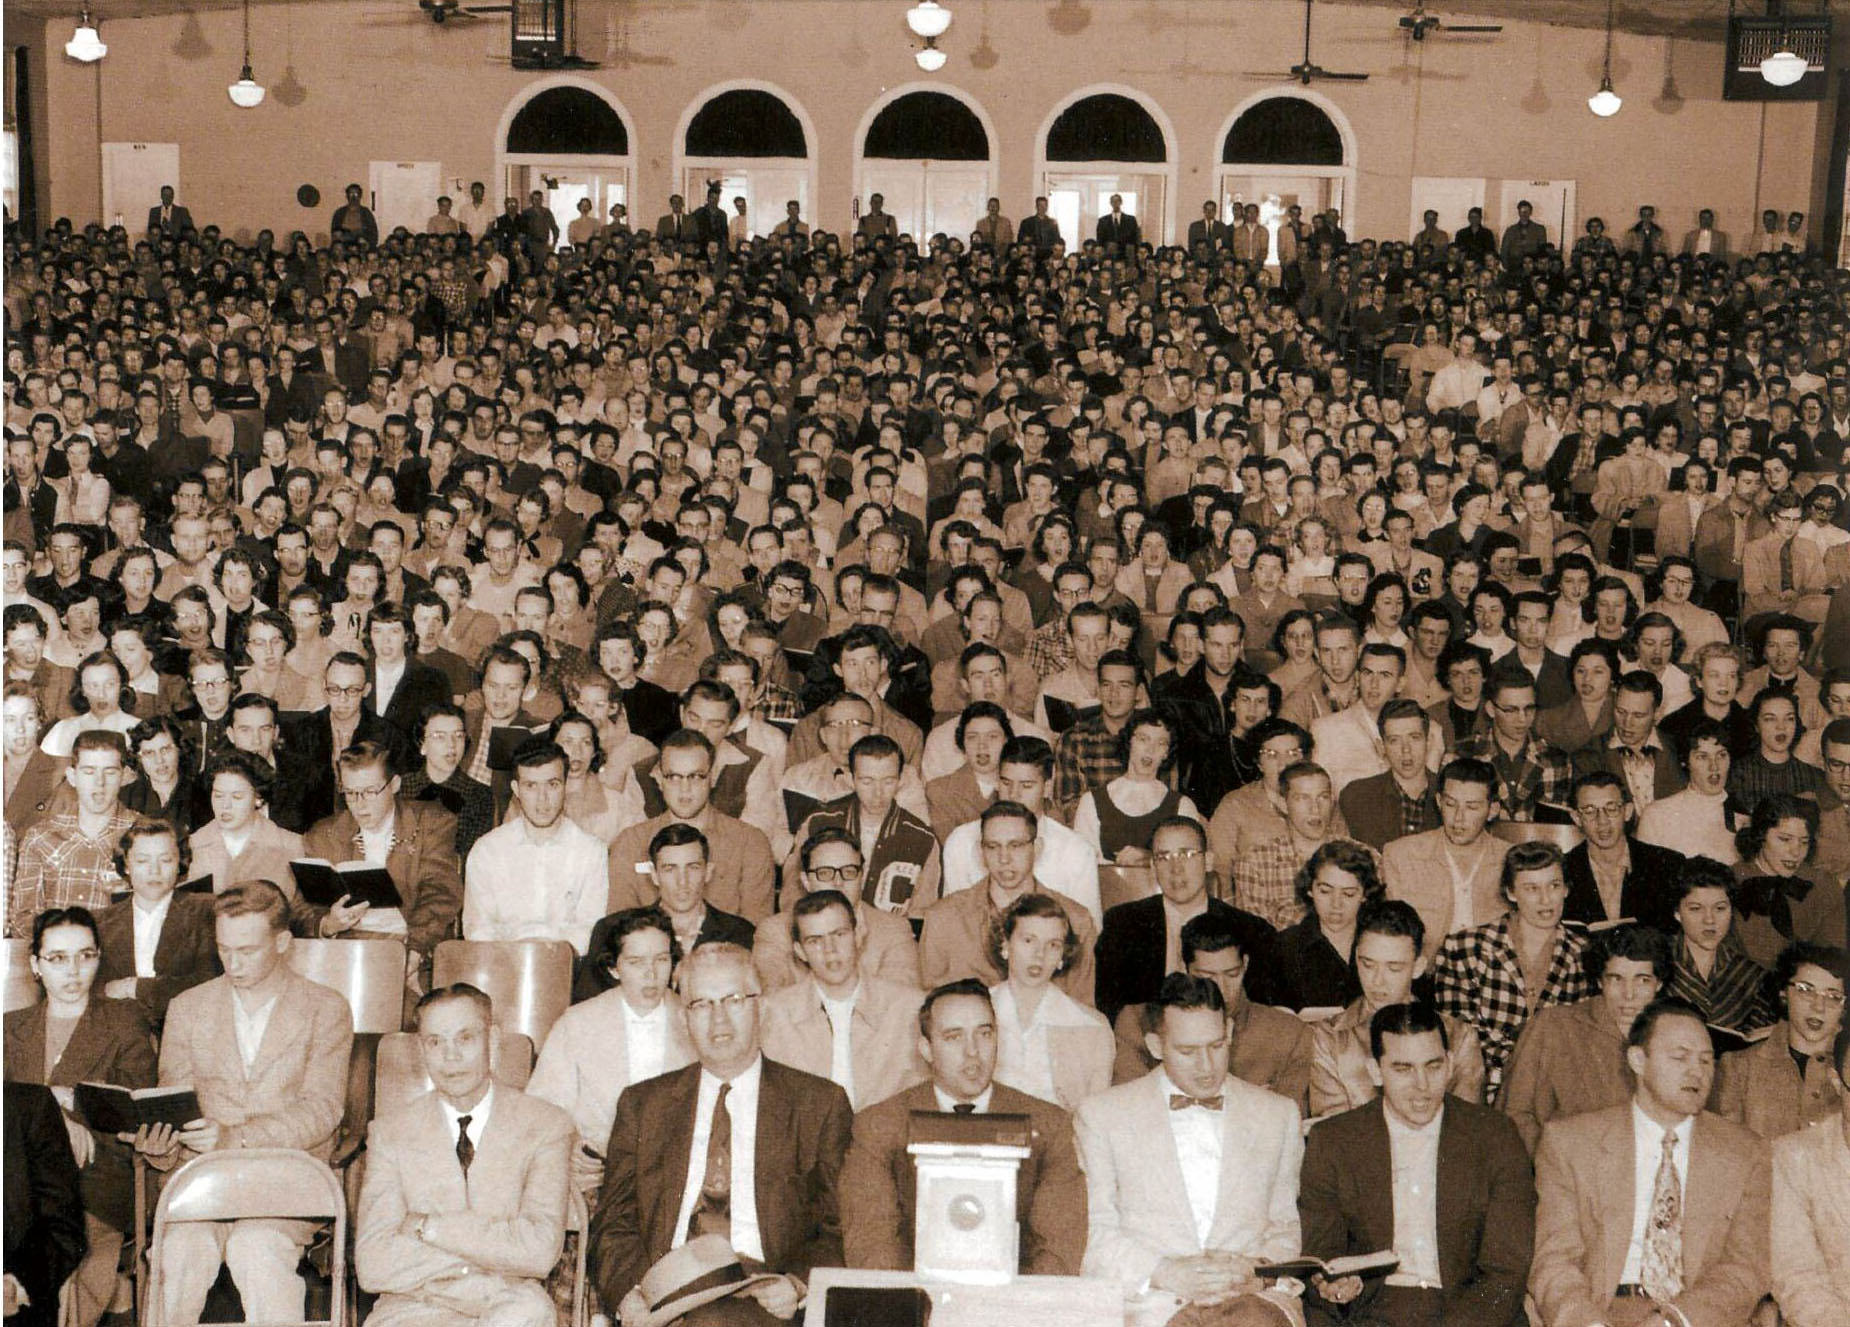 Photograph of daily chapel in Sewell Auditorium, Abilene Christian College, ca 1955.